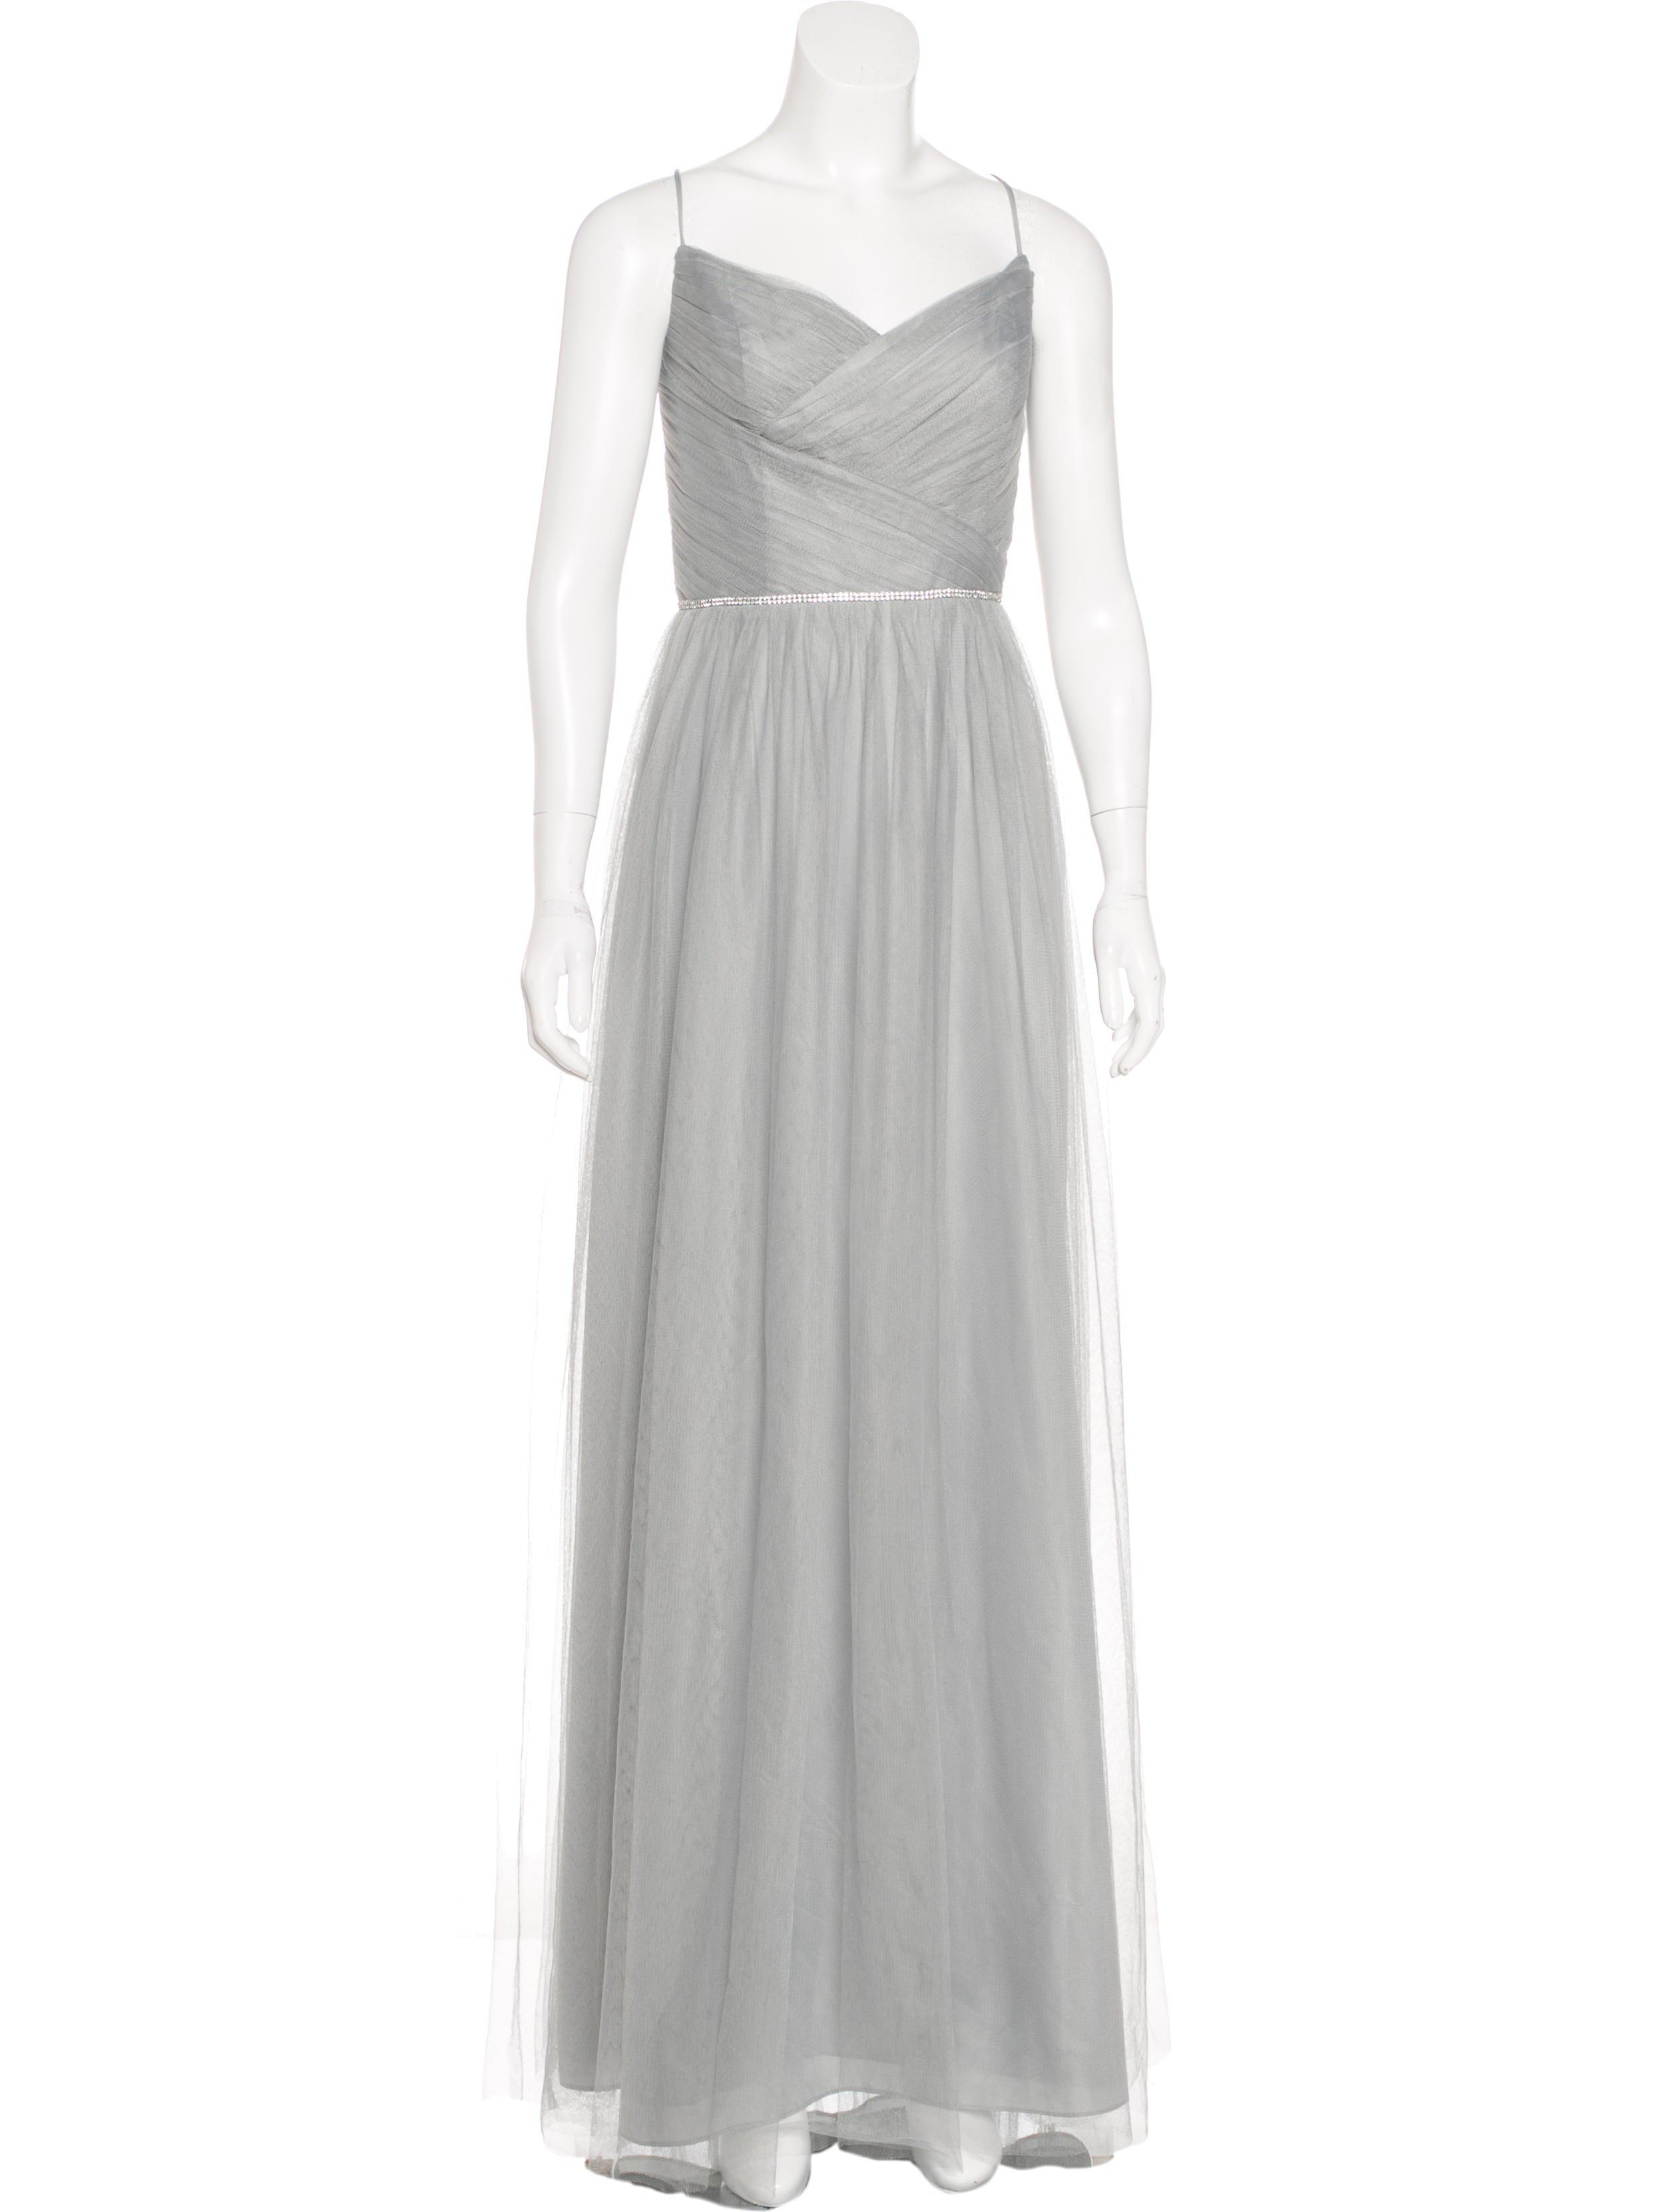 Lyst - Monique Lhuillier Bridesmaids Tulle Evening Dress Grey in Gray